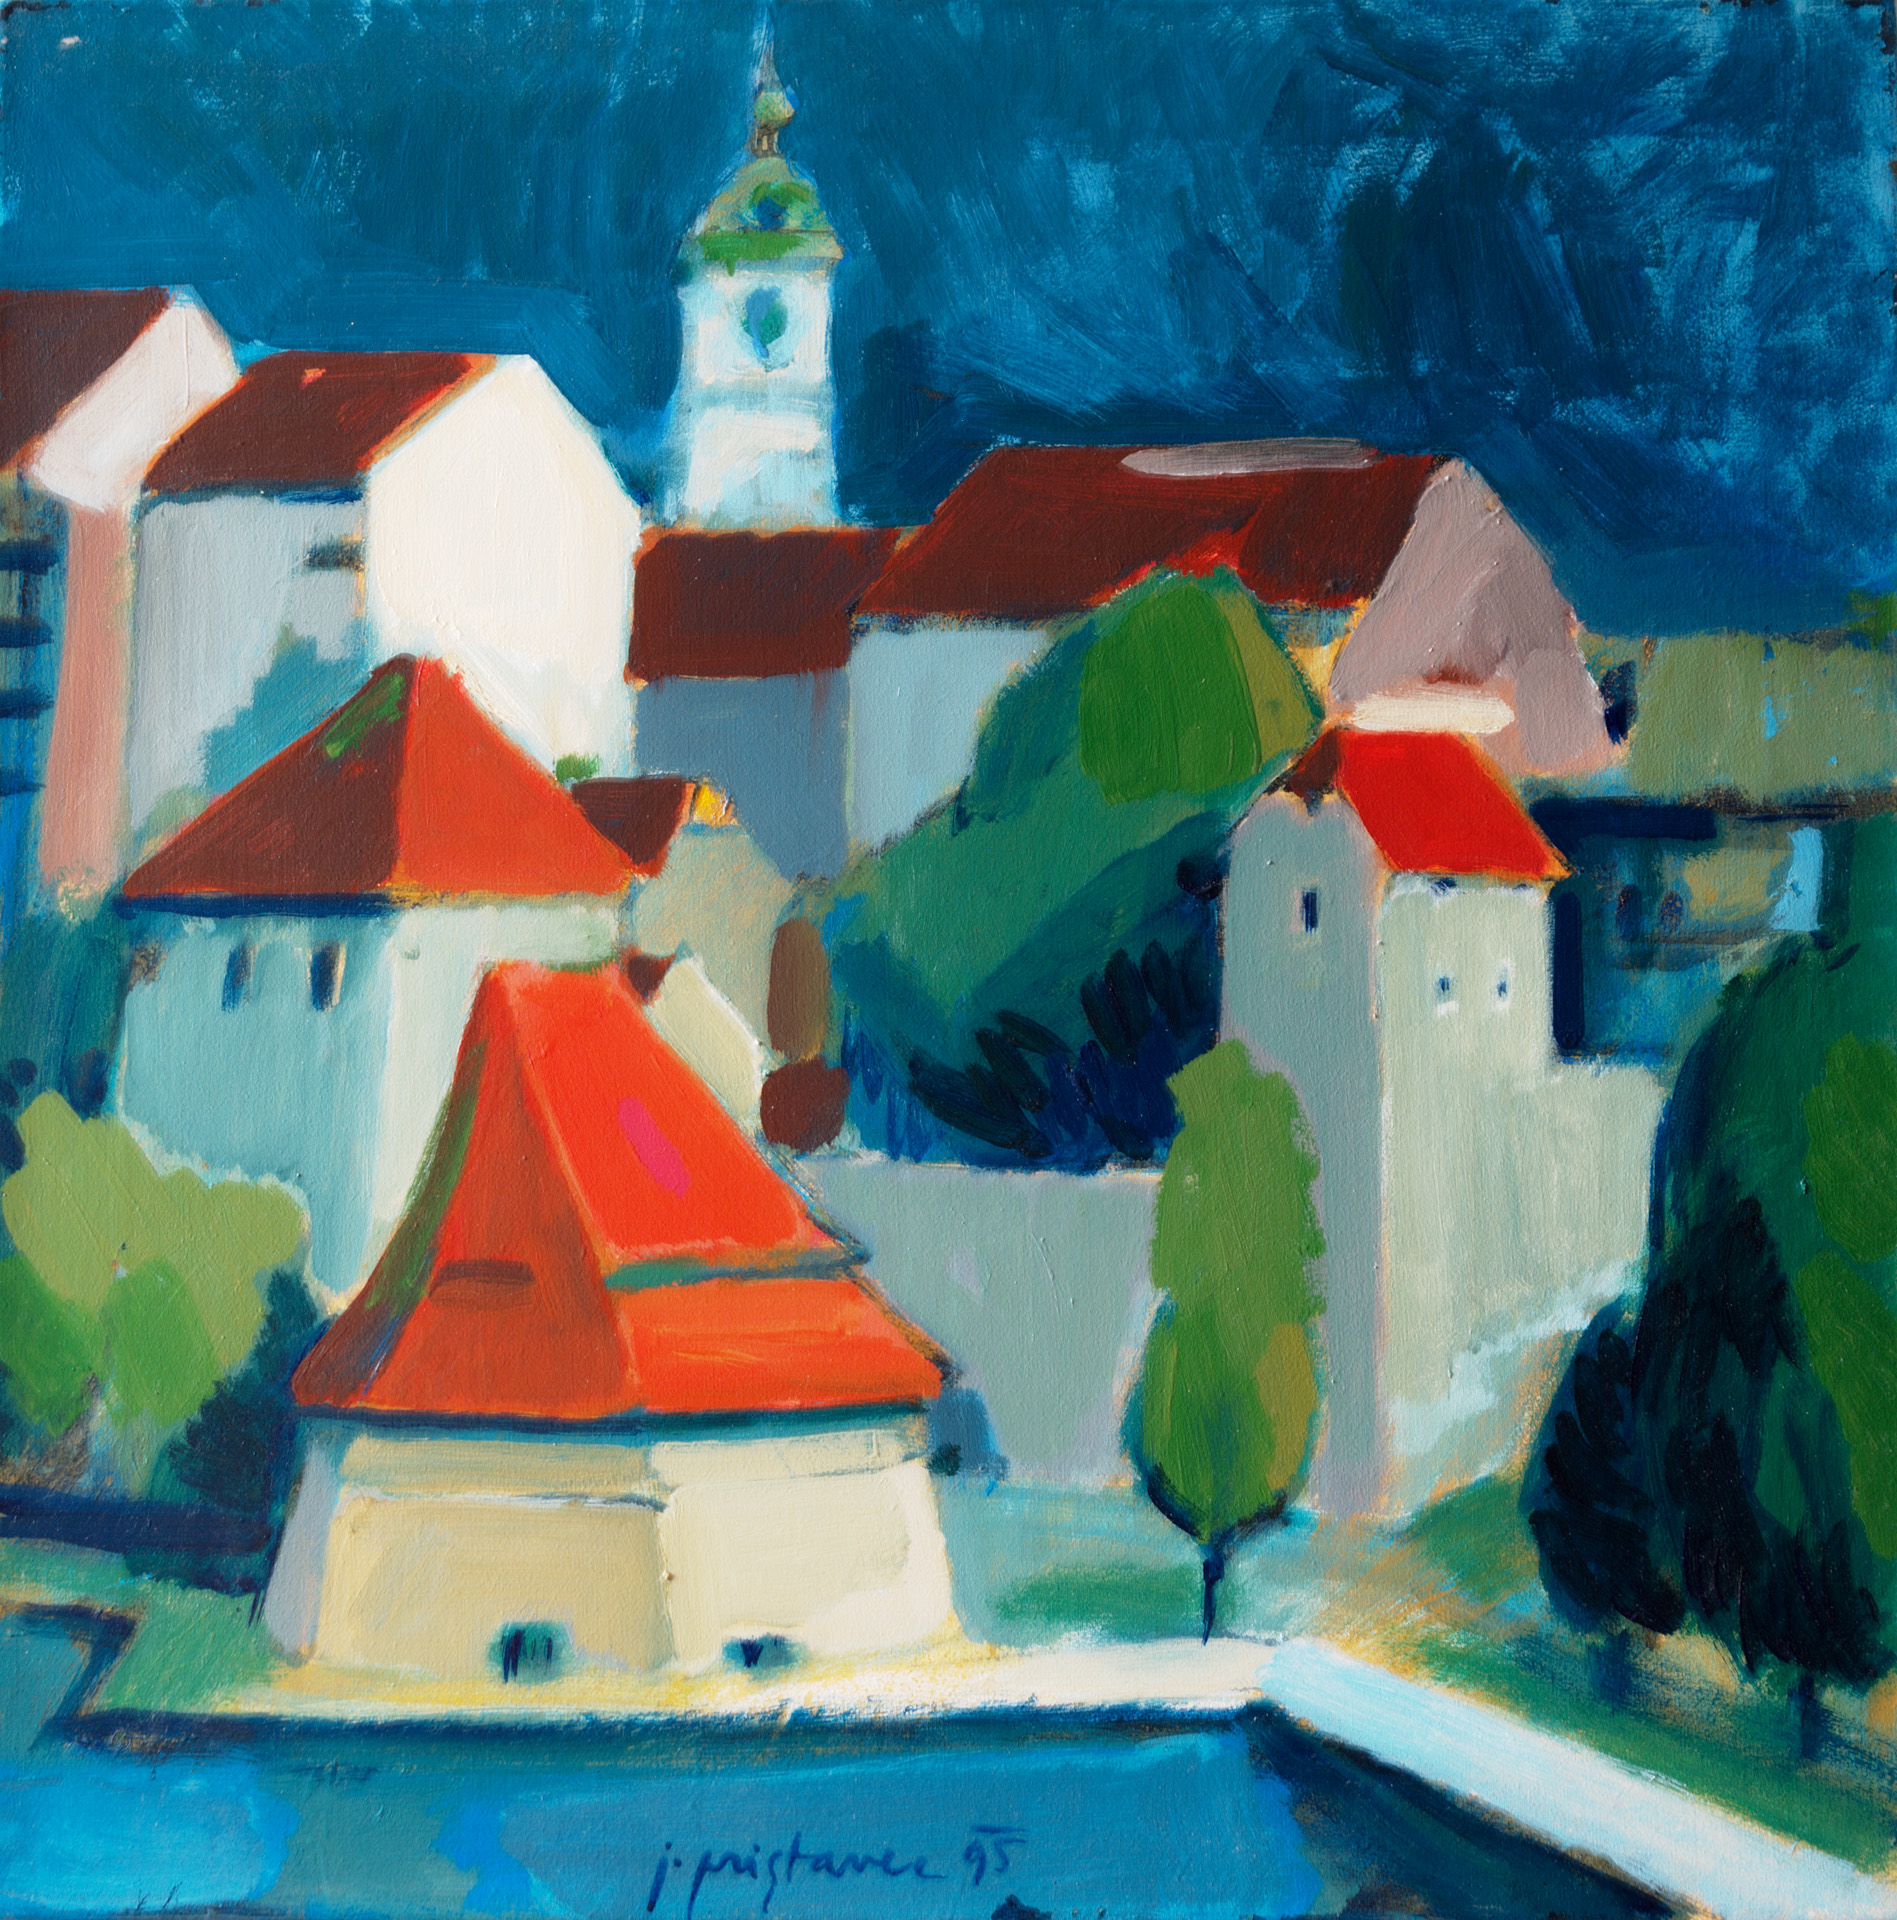 Water Tower  / 1995 / oil on canvas / 60 x 60 cm